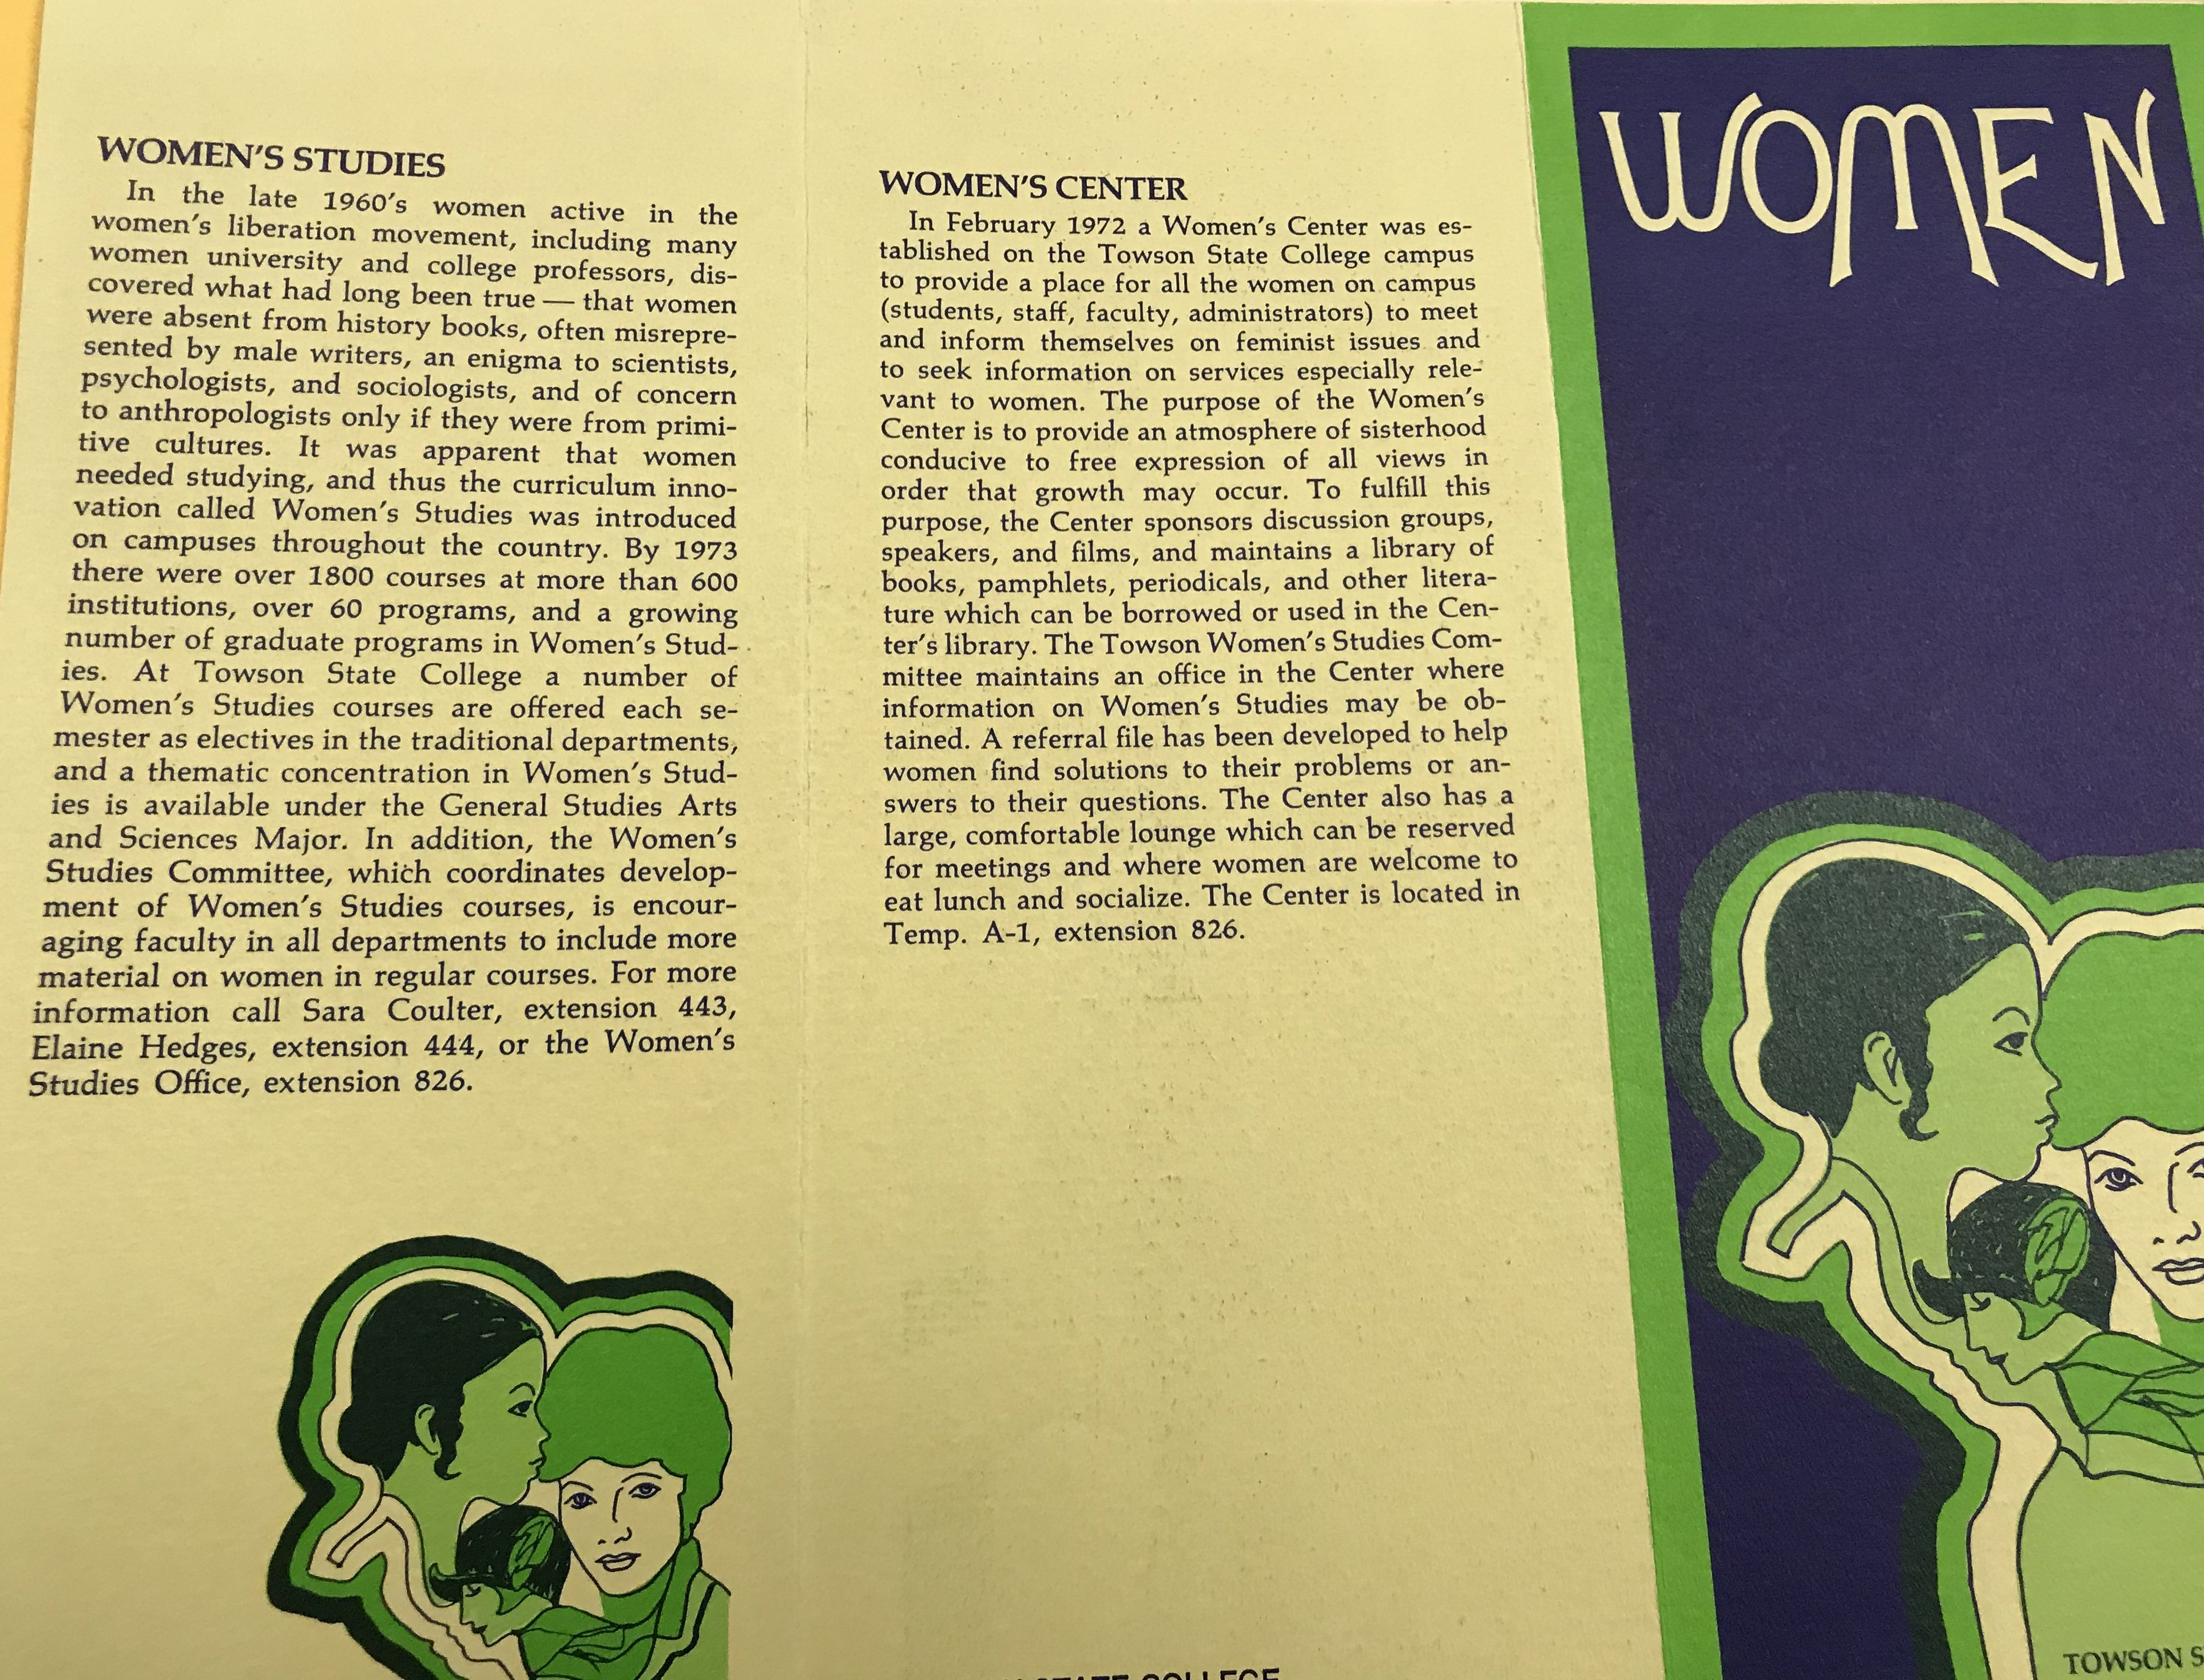 Pamphlet: TSC Women's Center Board & Women's Studies, Towson University Archives Box 44 Folder 8 UAO30000 Women, 1972.